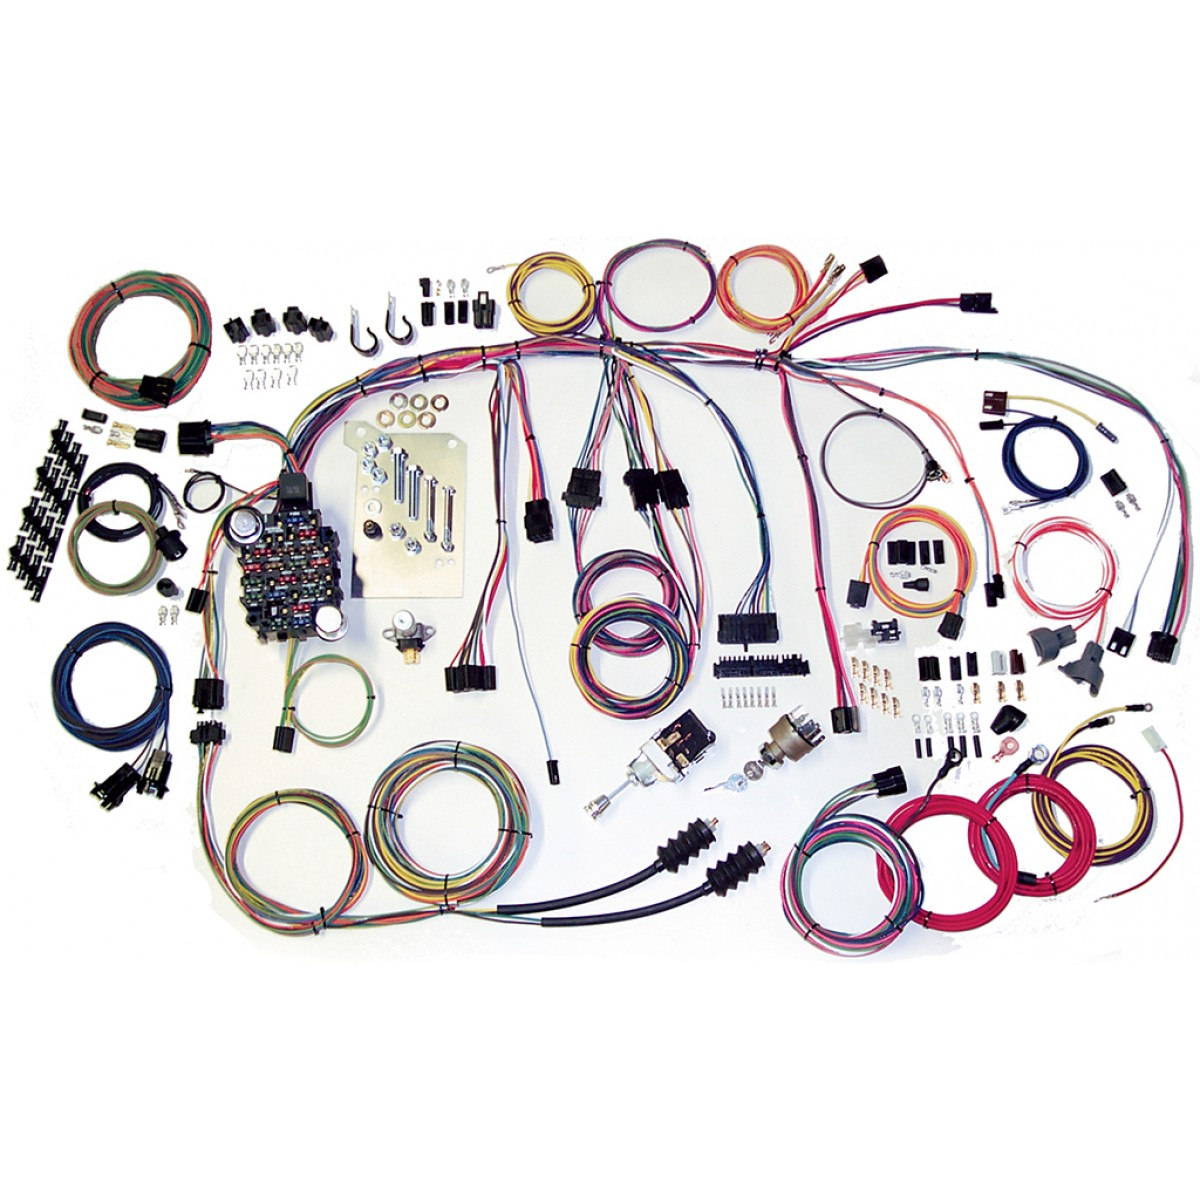 60 66 chevy truck wiring harness kit 1960 1966 chevy truck part 500560 chevy c10 c20 wiring harness chevy c10 wiring harness complete wiring harness kit 1960 1966 chevy wiring harness at mifinder.co